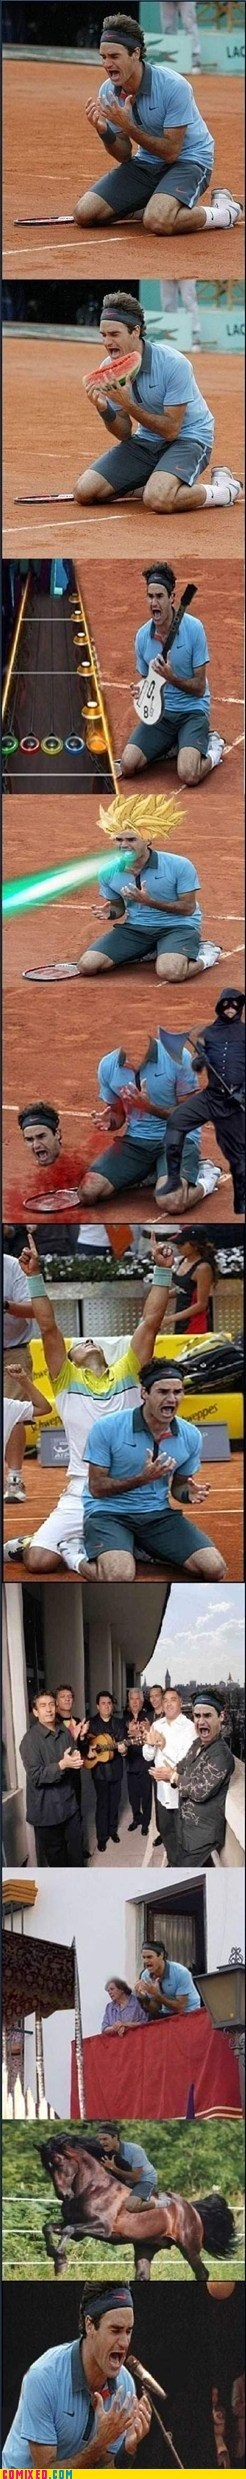 best of week,comic,Reframe,roger federer,tennis,the internets,why